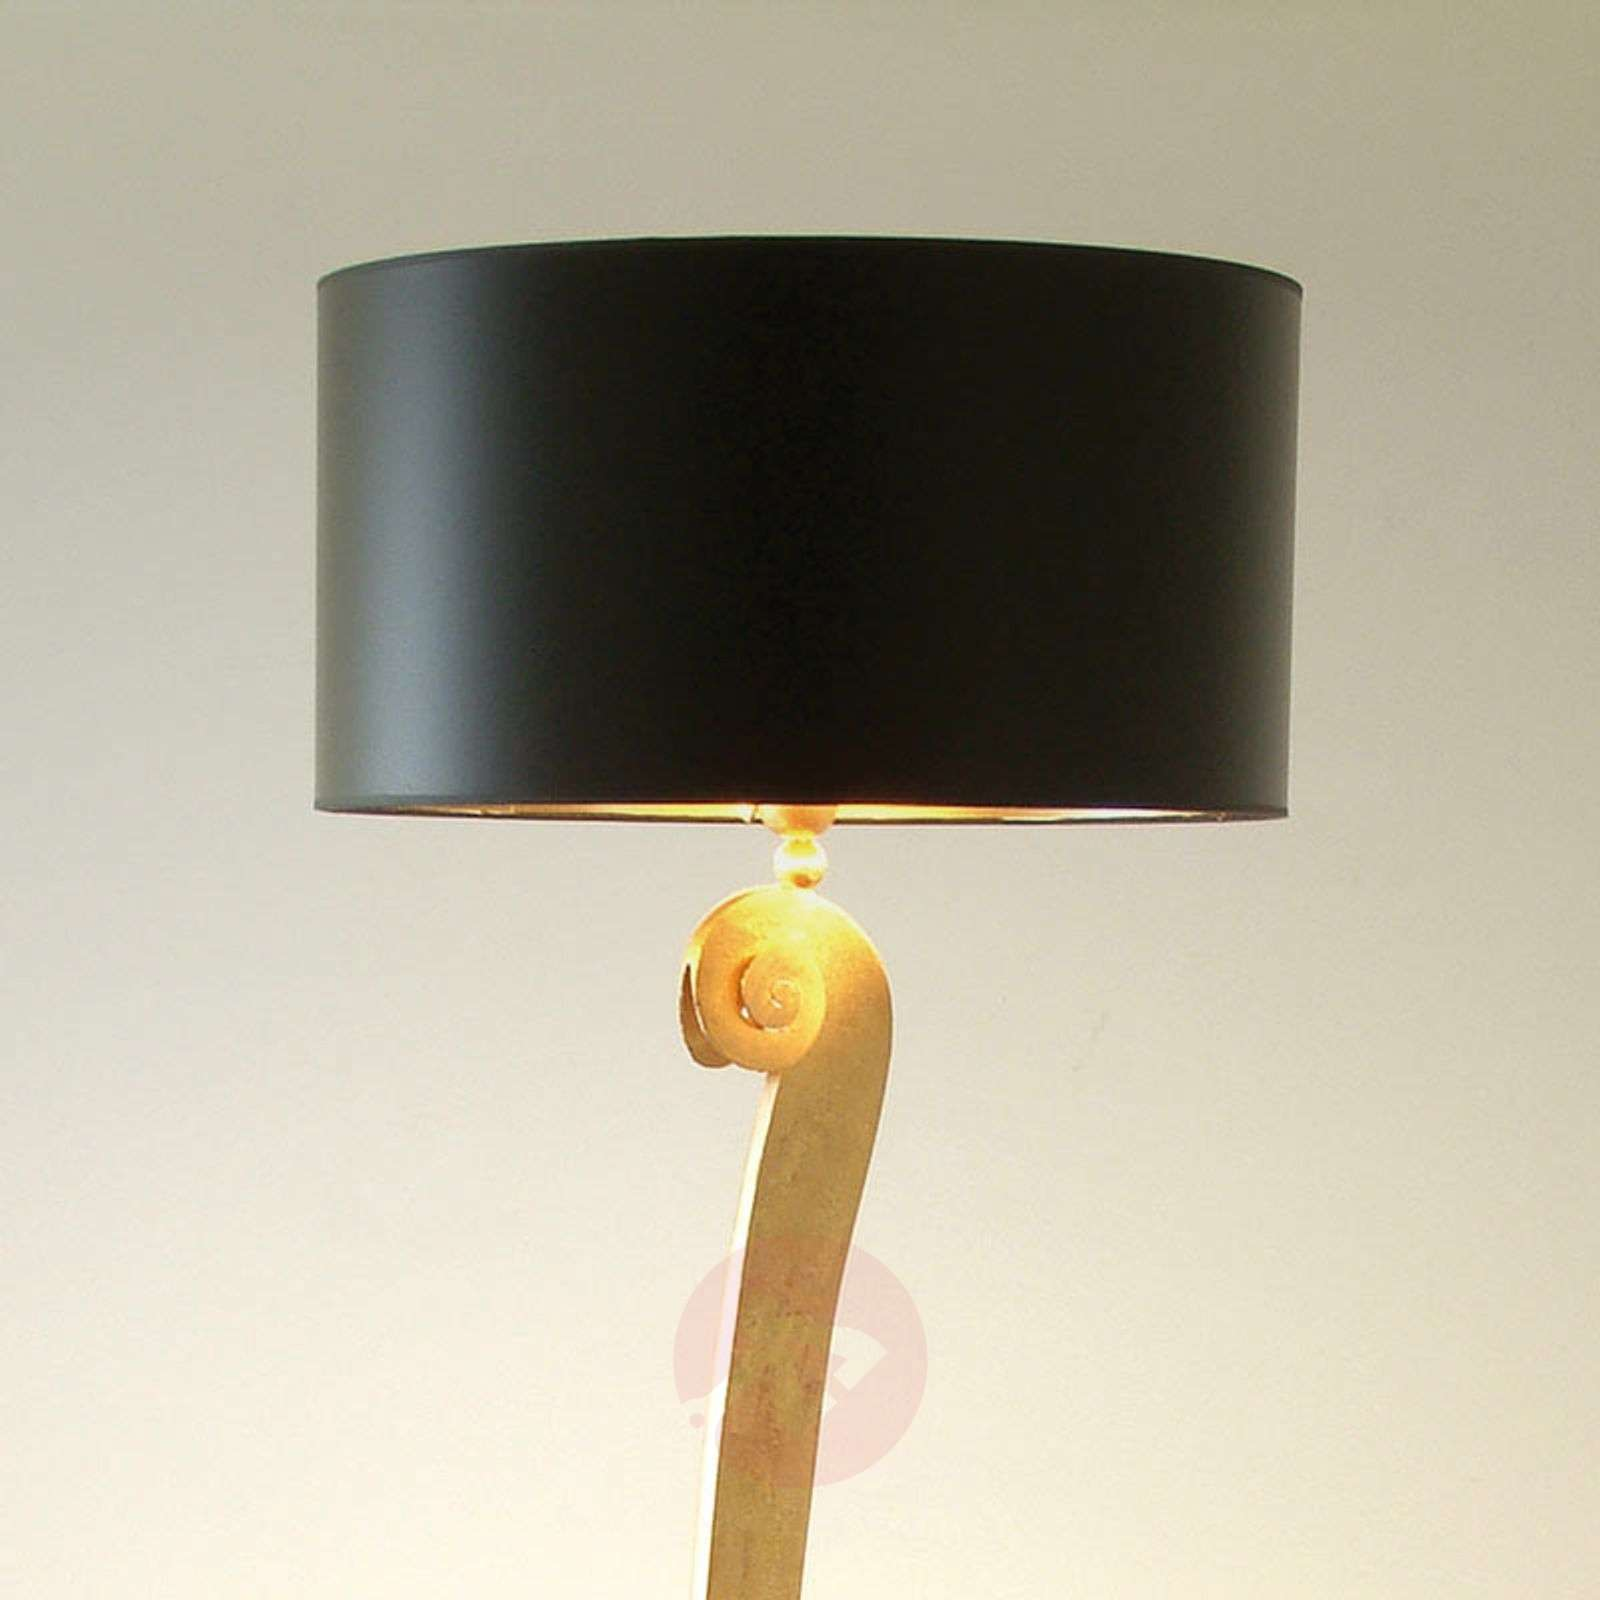 Elegant floor lamp LORGOLIOSO in gold-black-4512120-01